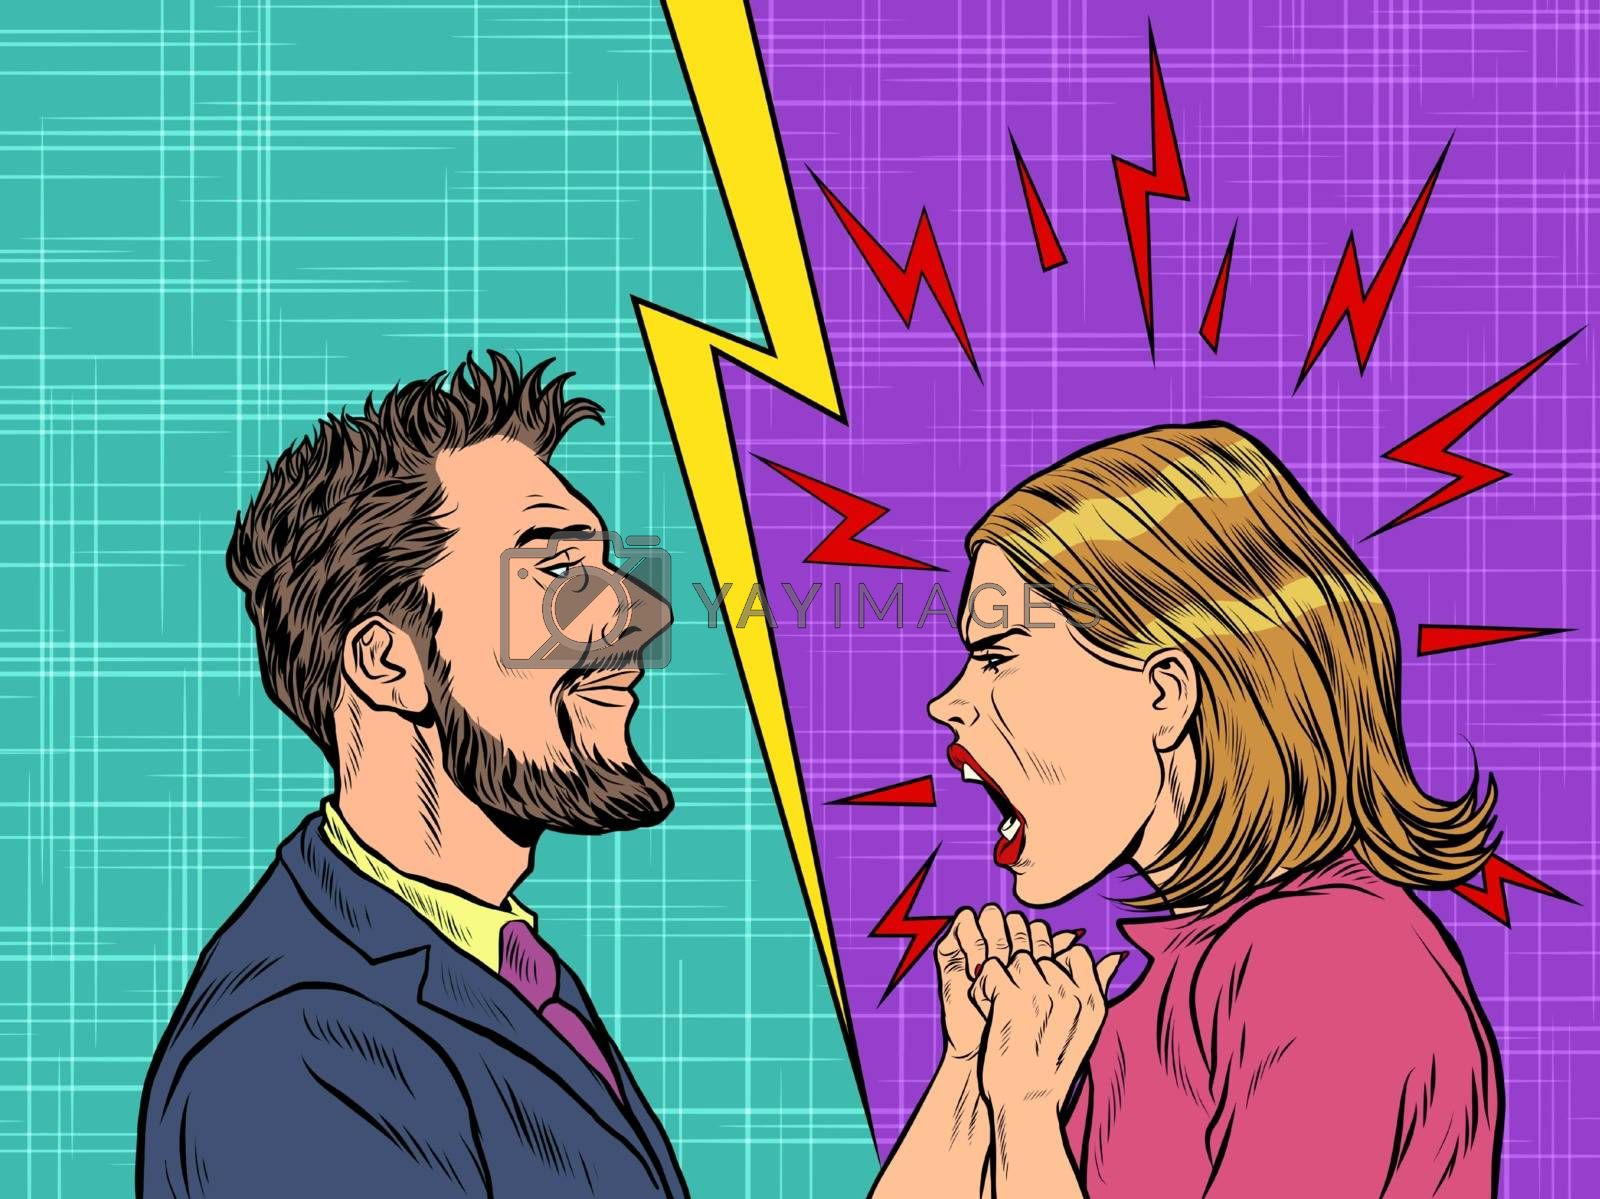 man and woman dispute emotions scream. Pop art retro vector illustration vintage kitsch 50s 60s style